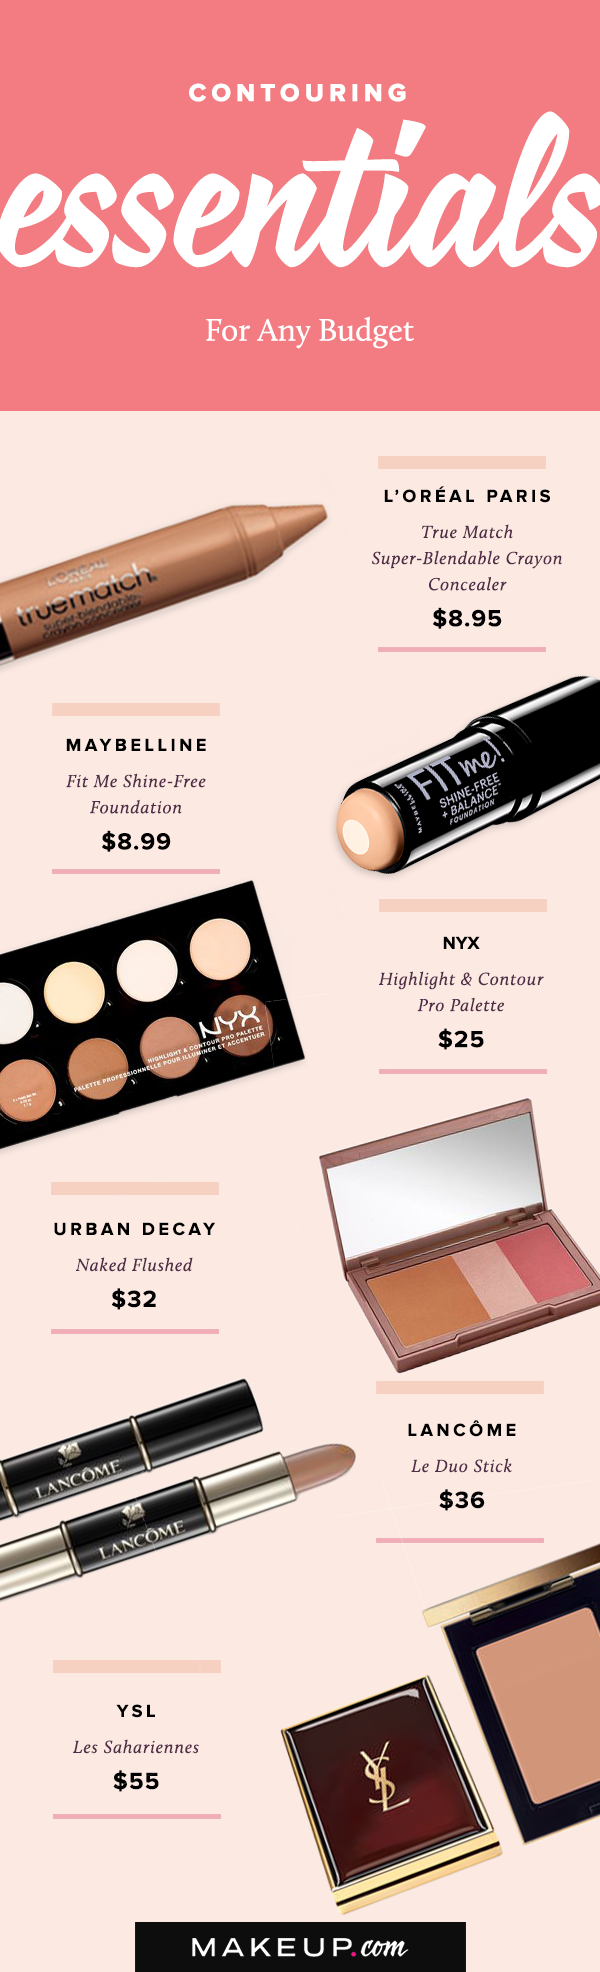 Contouring Essentials For Any Budget In 2020 Trendy Makeup Best Makeup Products Contouring And Highlighting